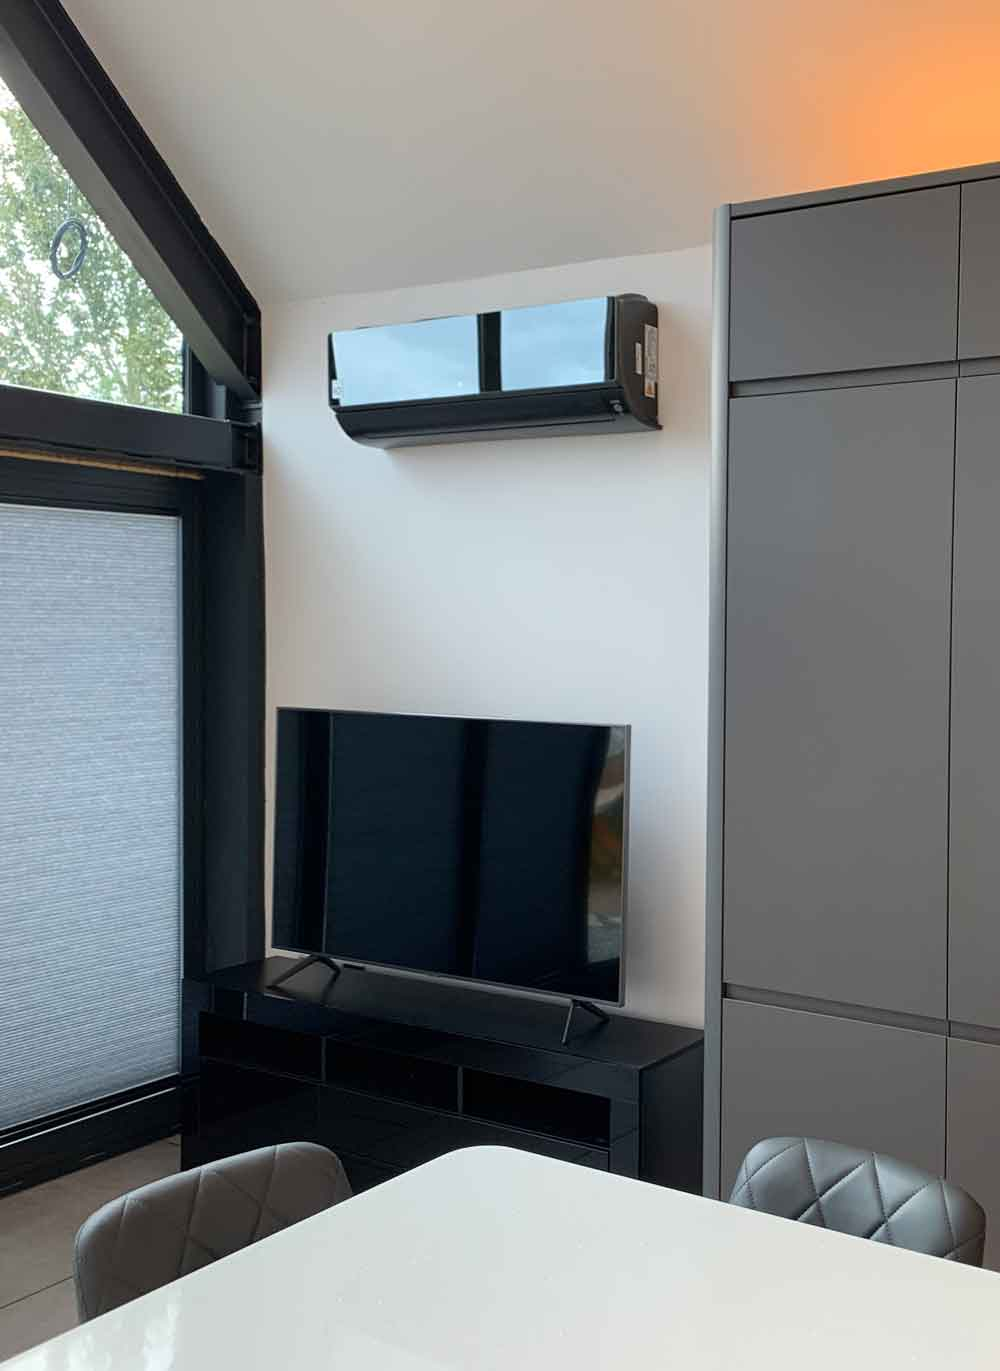 SpartaMech-air-conditioning-in-lounge